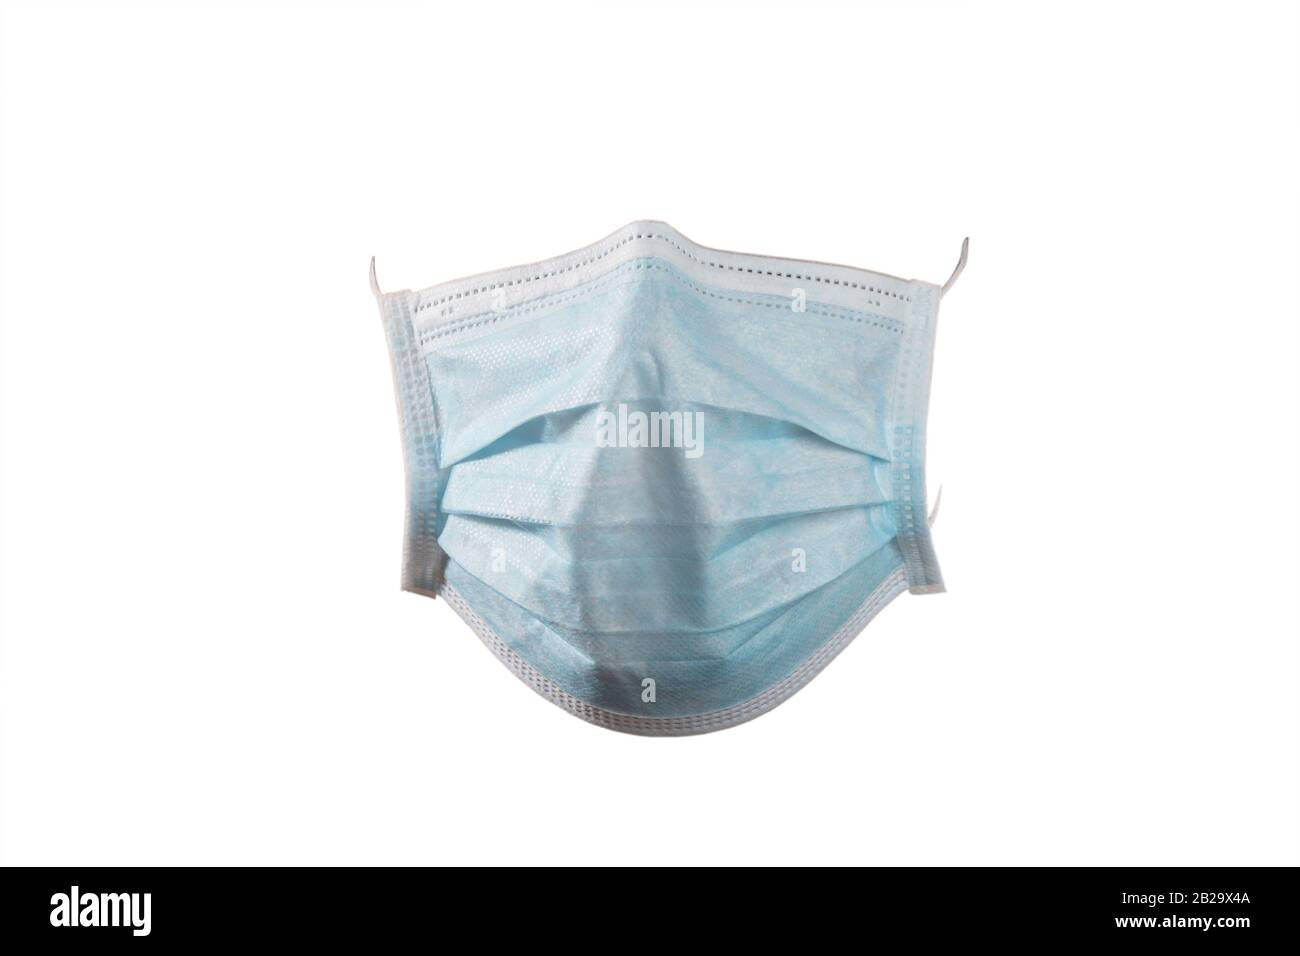 feng surgical mask